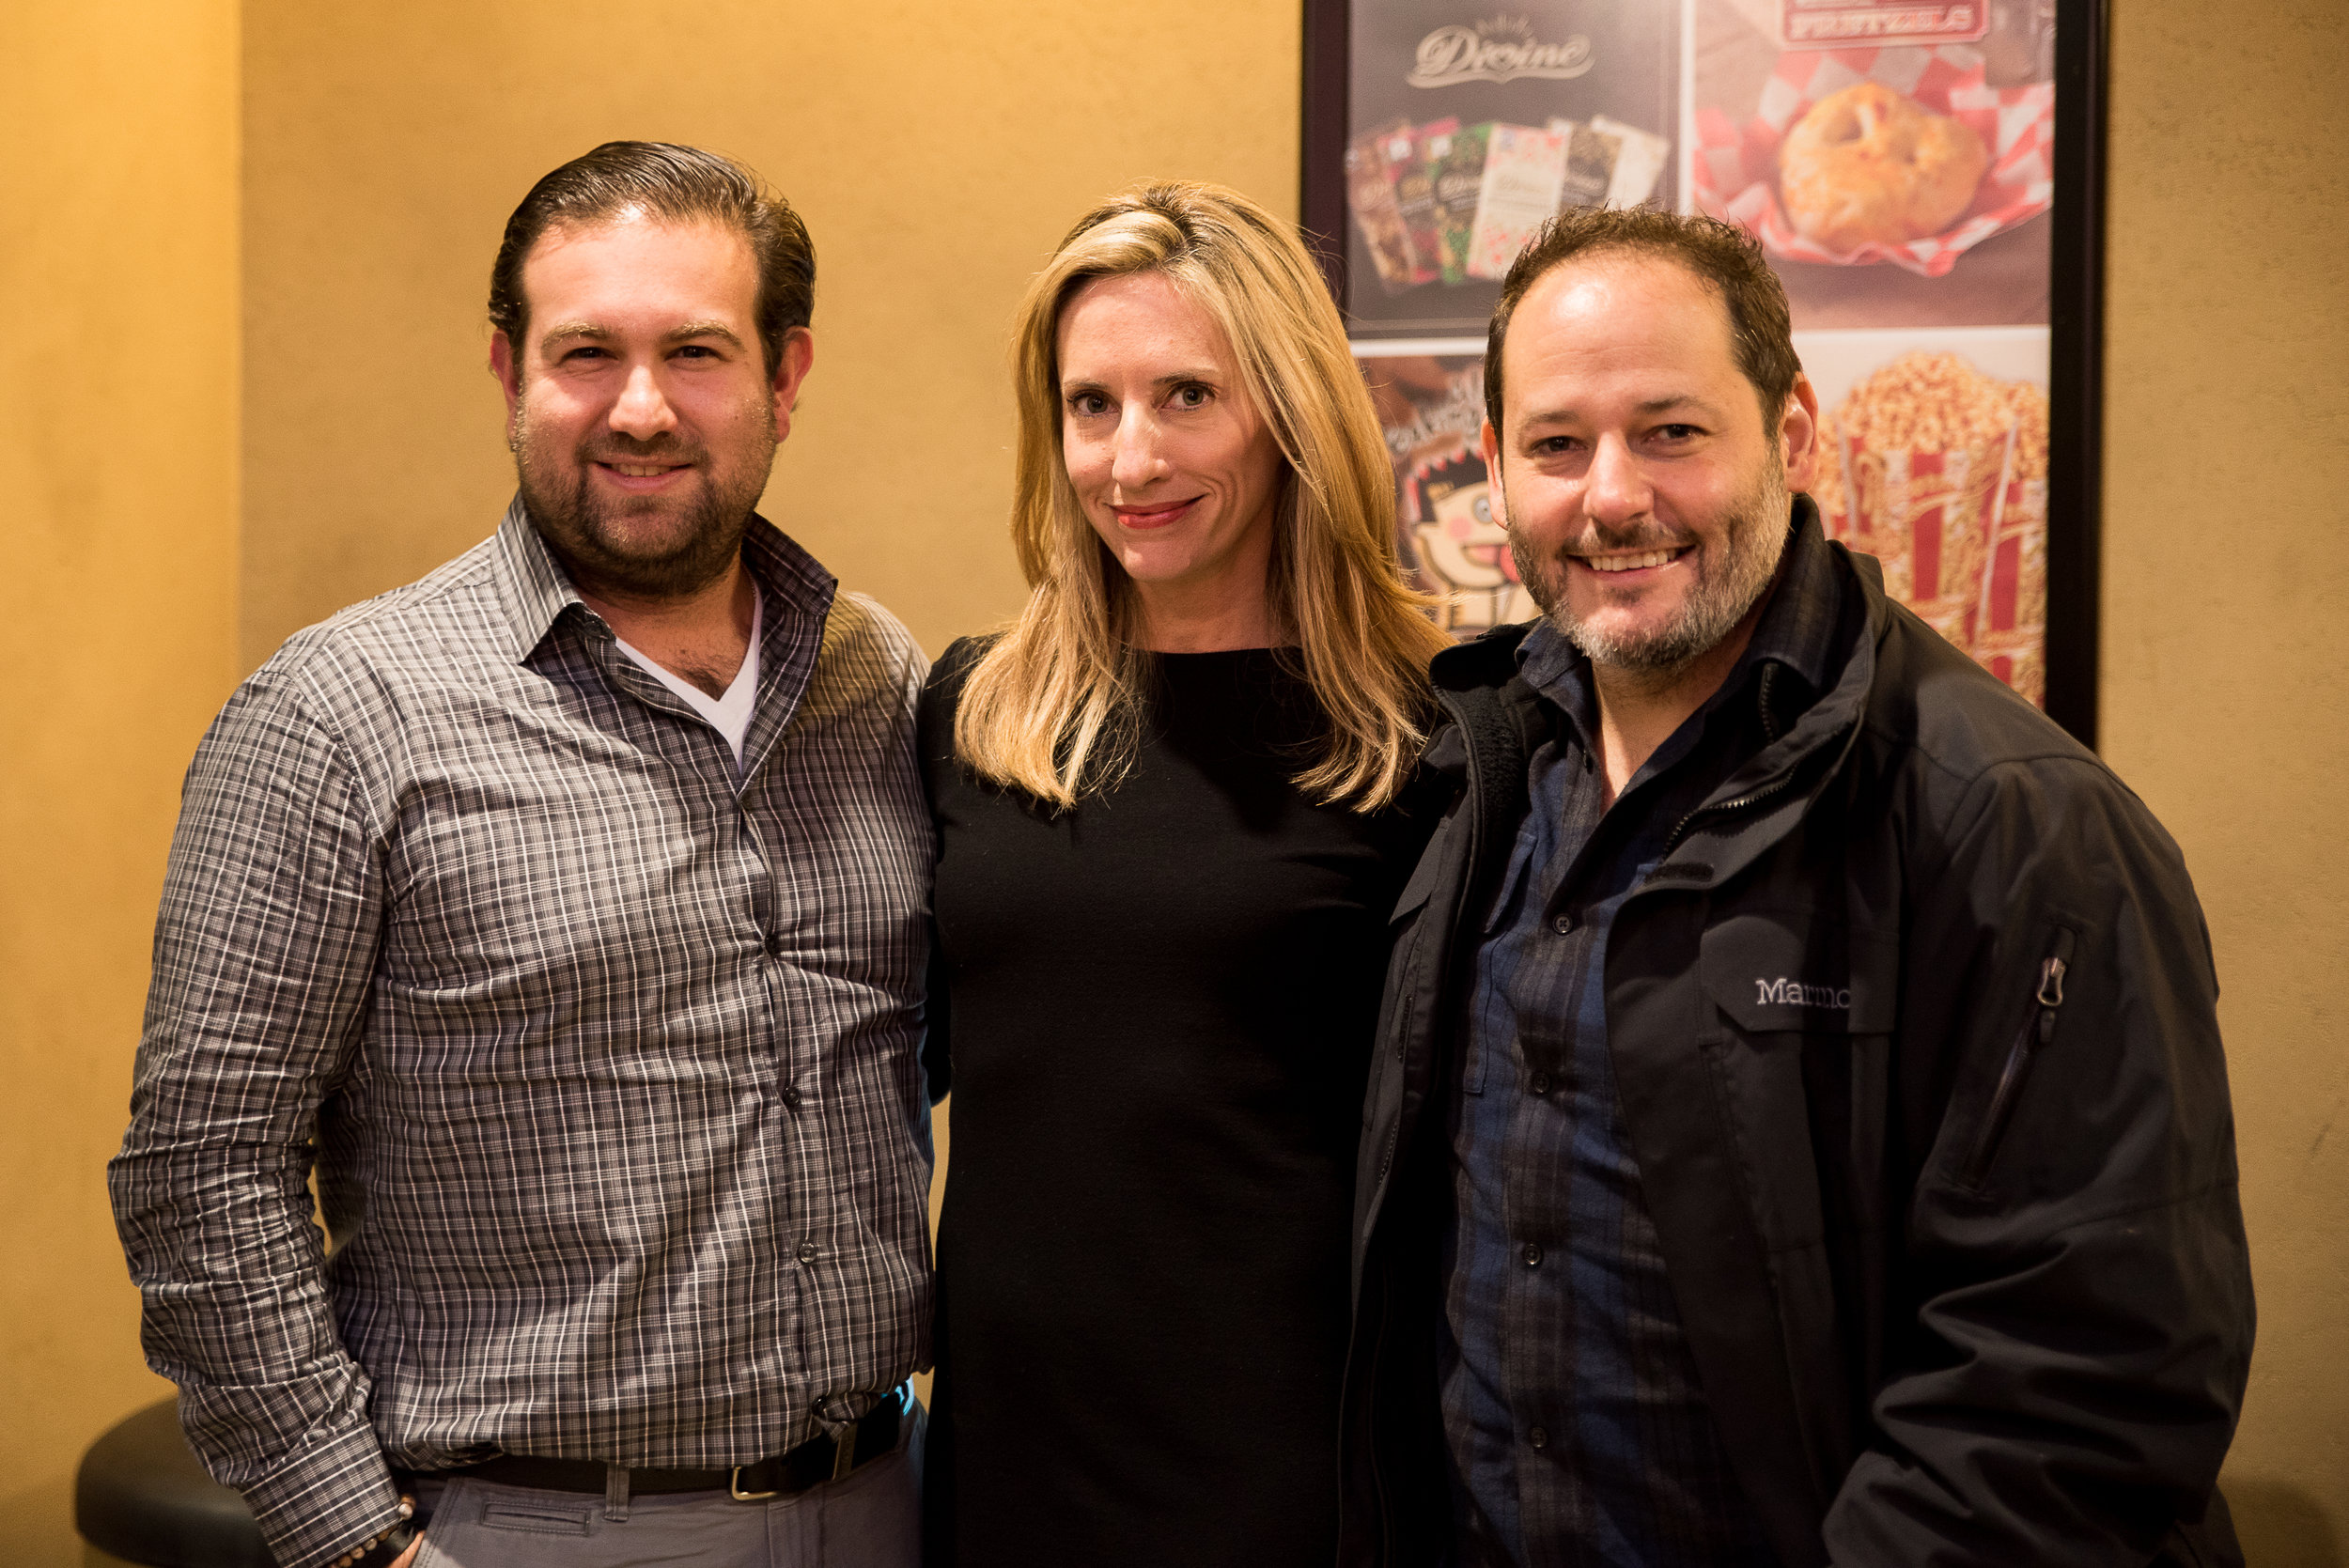 VetLinks.org hosted many educational events, fundraisers, and speaking engagements to raise awareness for services offered to Veterans, Caregivers, and Families struggling with the affects of post-traumatic stress, traumatic brain injury, and substance use disorder.   Above:  Ilan Arboleda , Jessica Kavanagh, and Tom Donahue at the VetLinks screening of  Thank You fro     Your Service    hosted in Baltimore, MD on December 1, 2016. Below: KavFest 2017 event hosted in Pittsburg, KS. Photos by  Brett Dalton.